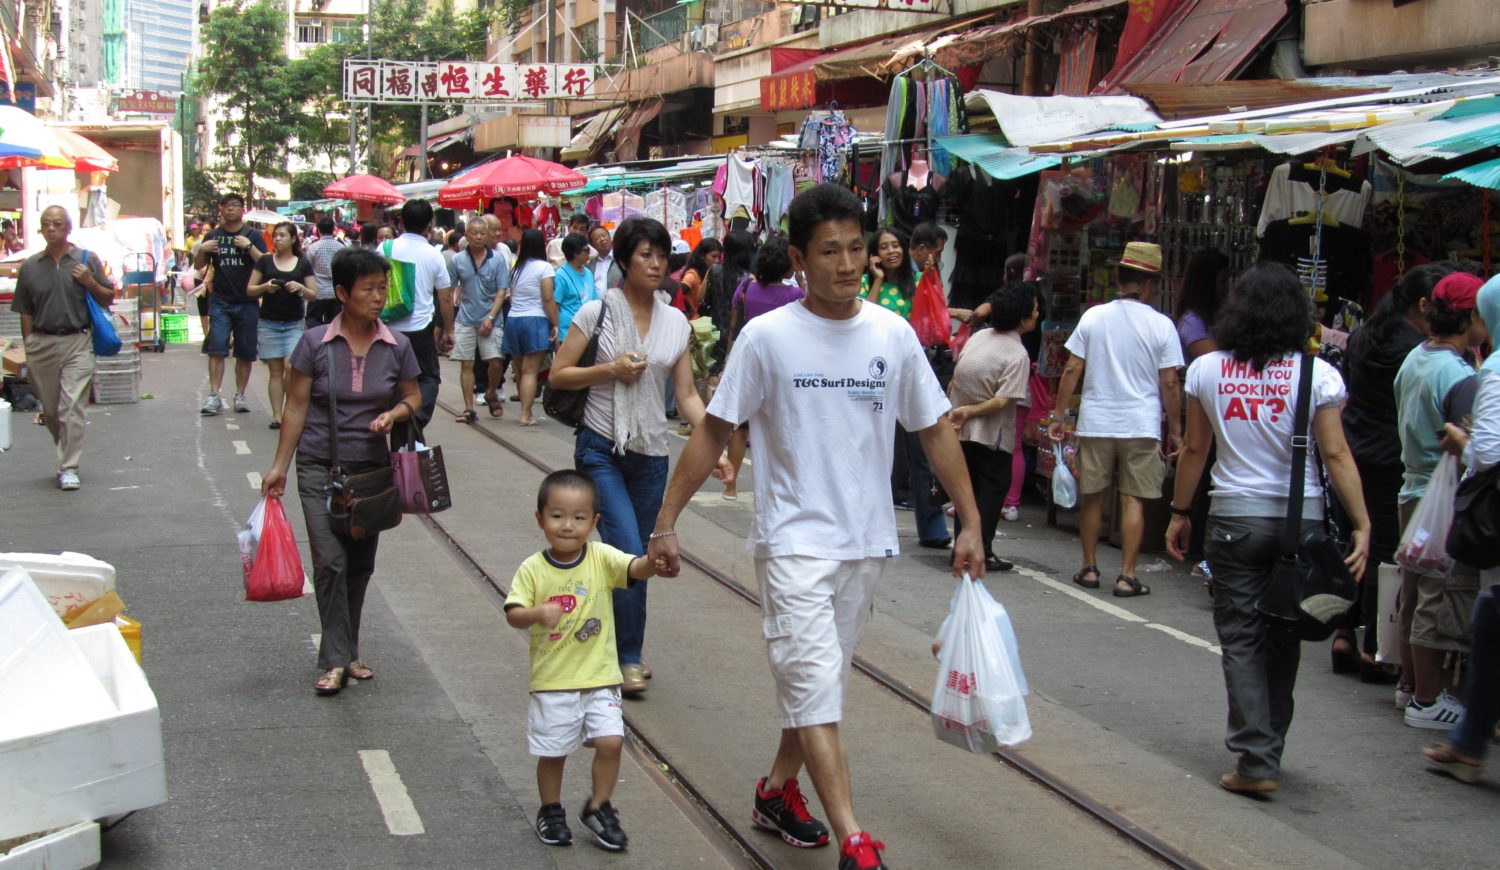 A man walking down a busy Hog Kong street holding the hand of a young child